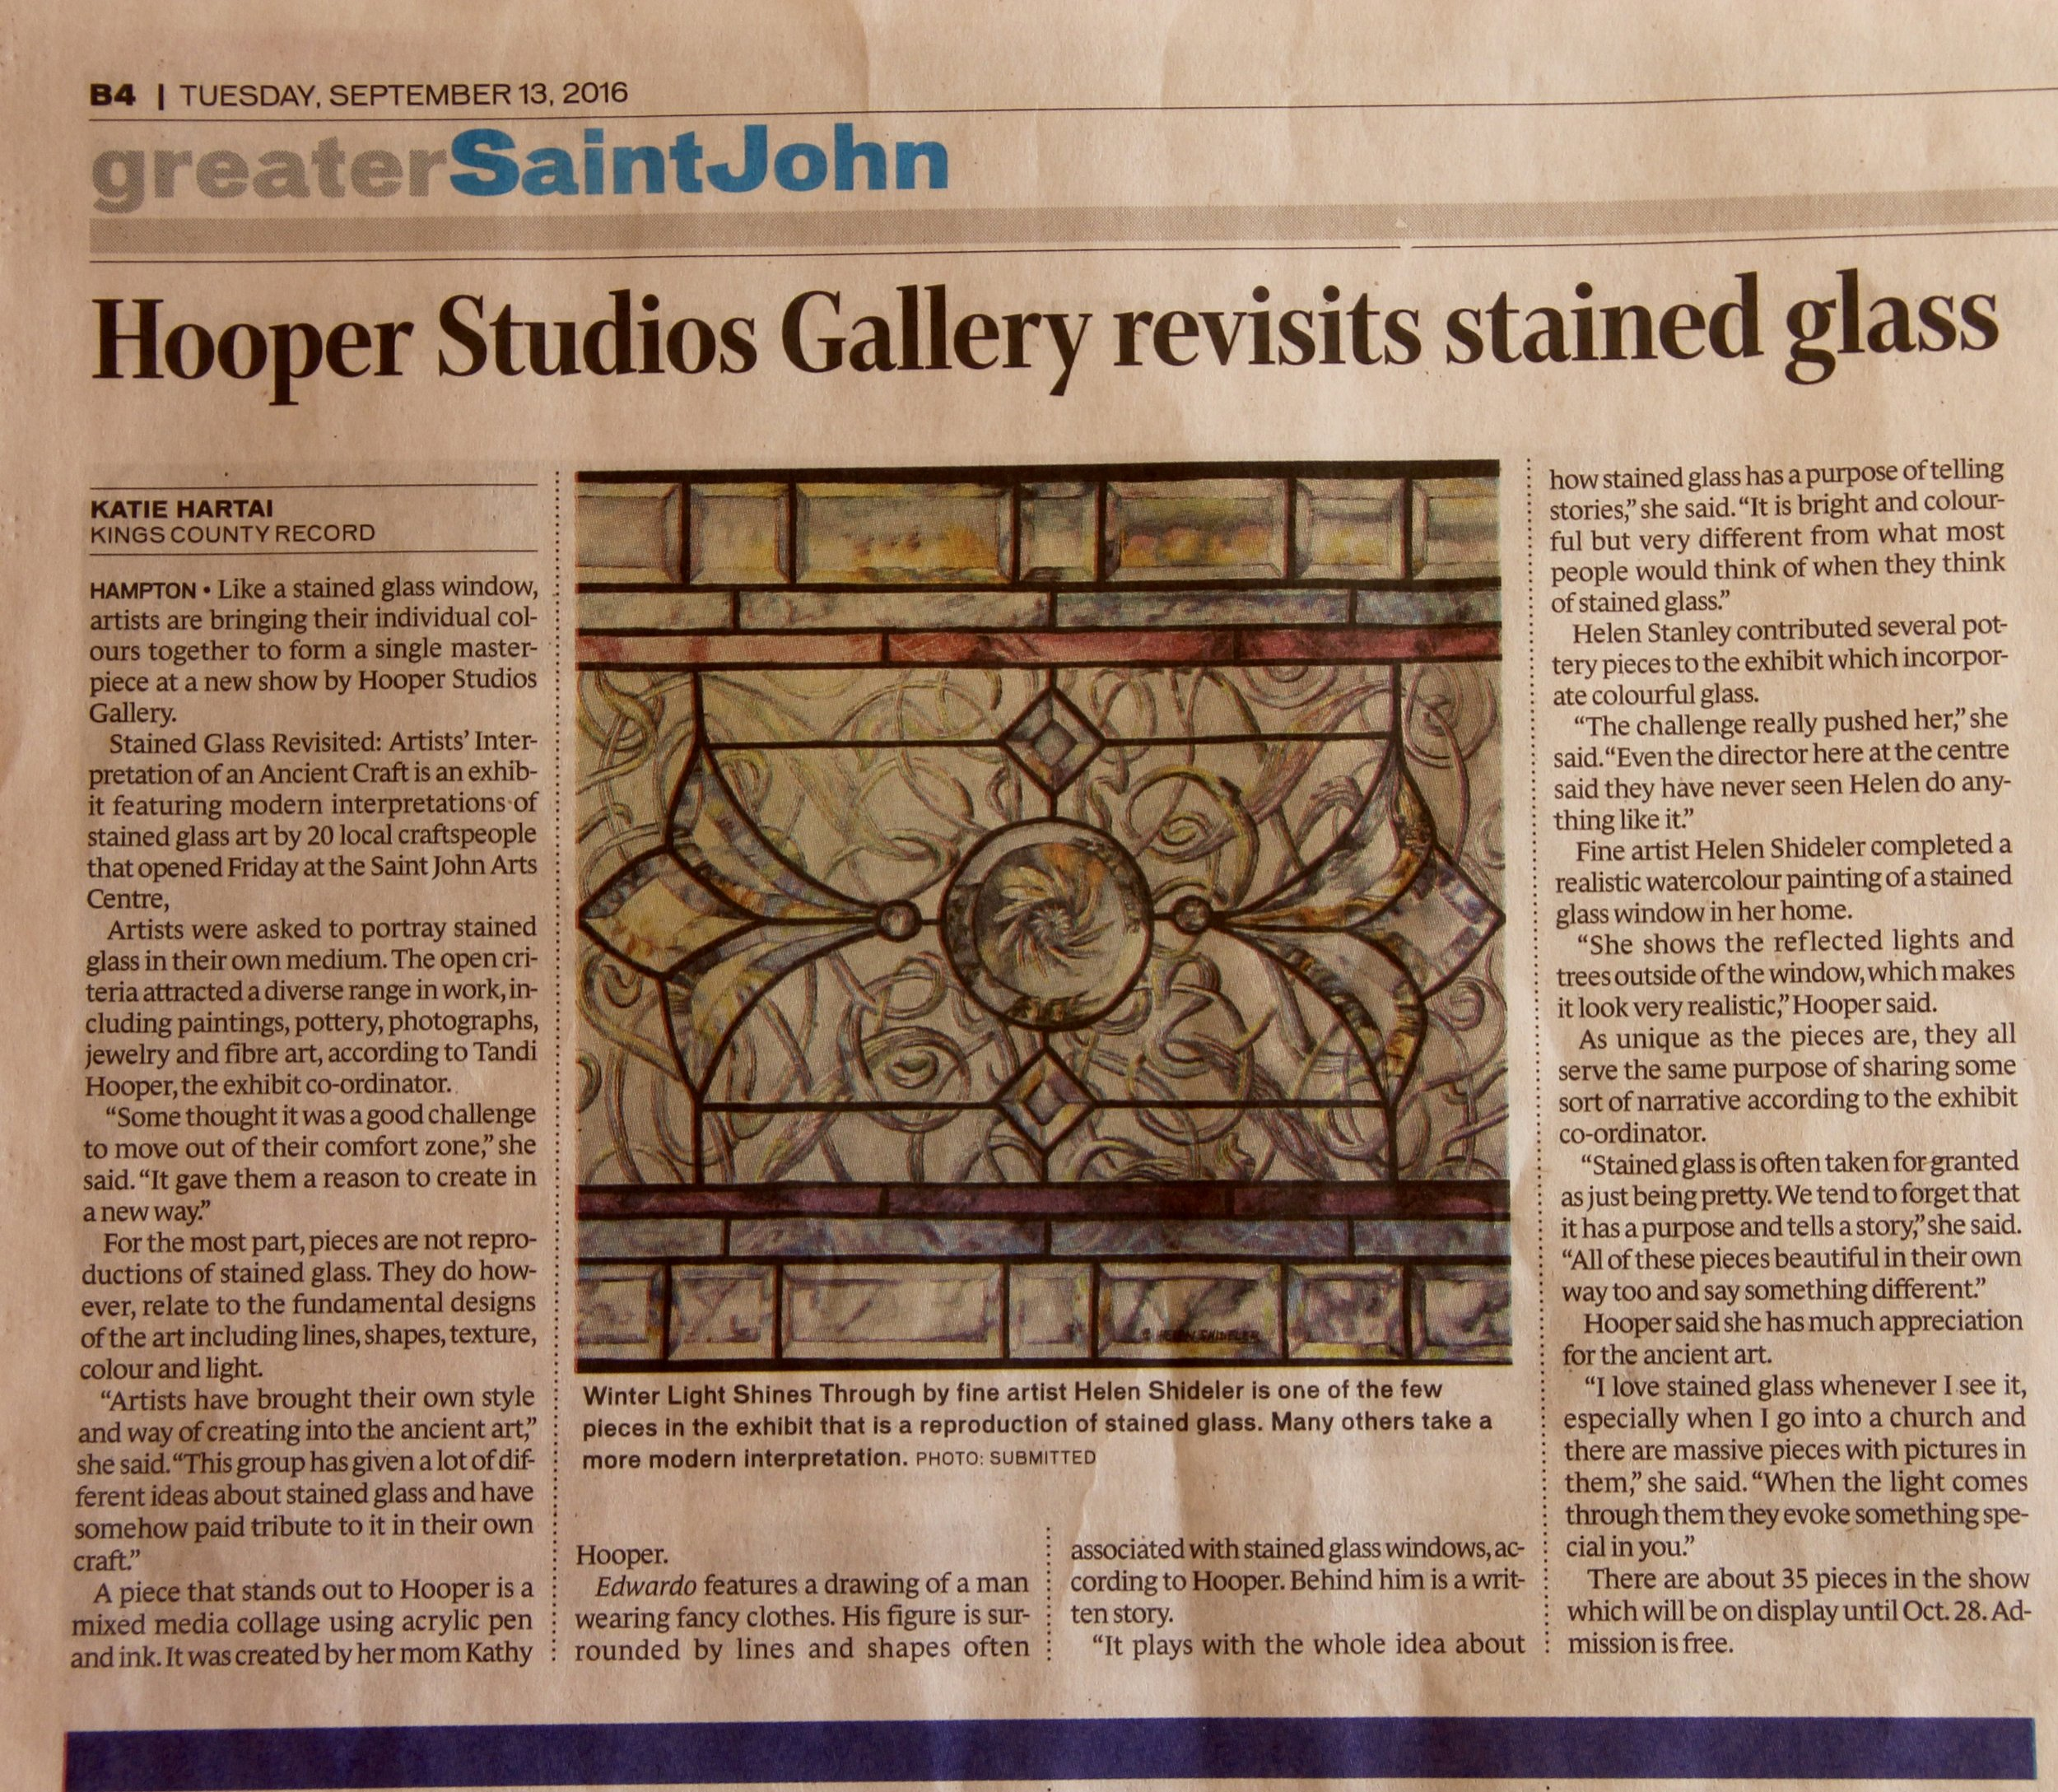 Article stained glass revisited